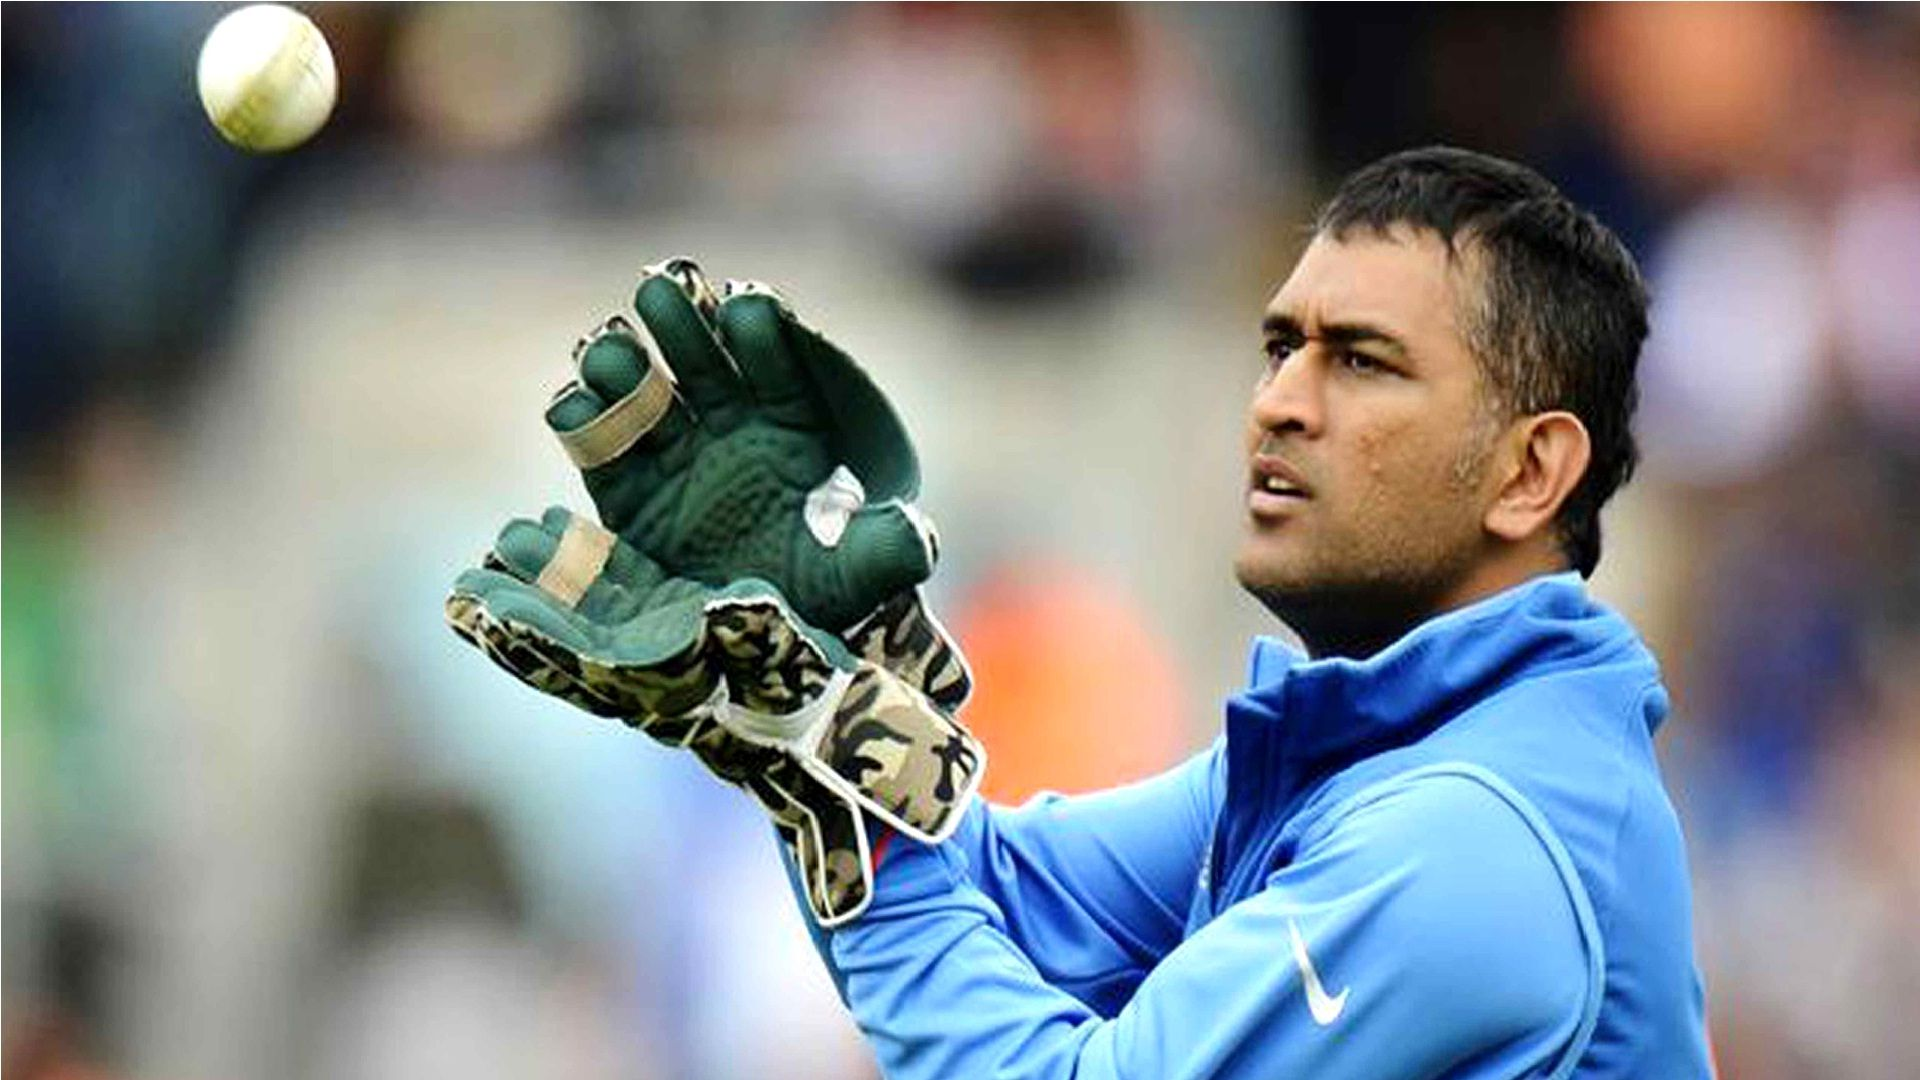 Download Photos Of Mahendra Singh Dhoni In Long Hair 1280 960 Ms Dhoni New Wallpapers 45 Wallpapers Adora Dhoni Wallpapers Ms Dhoni Wallpapers Dhoni Quotes